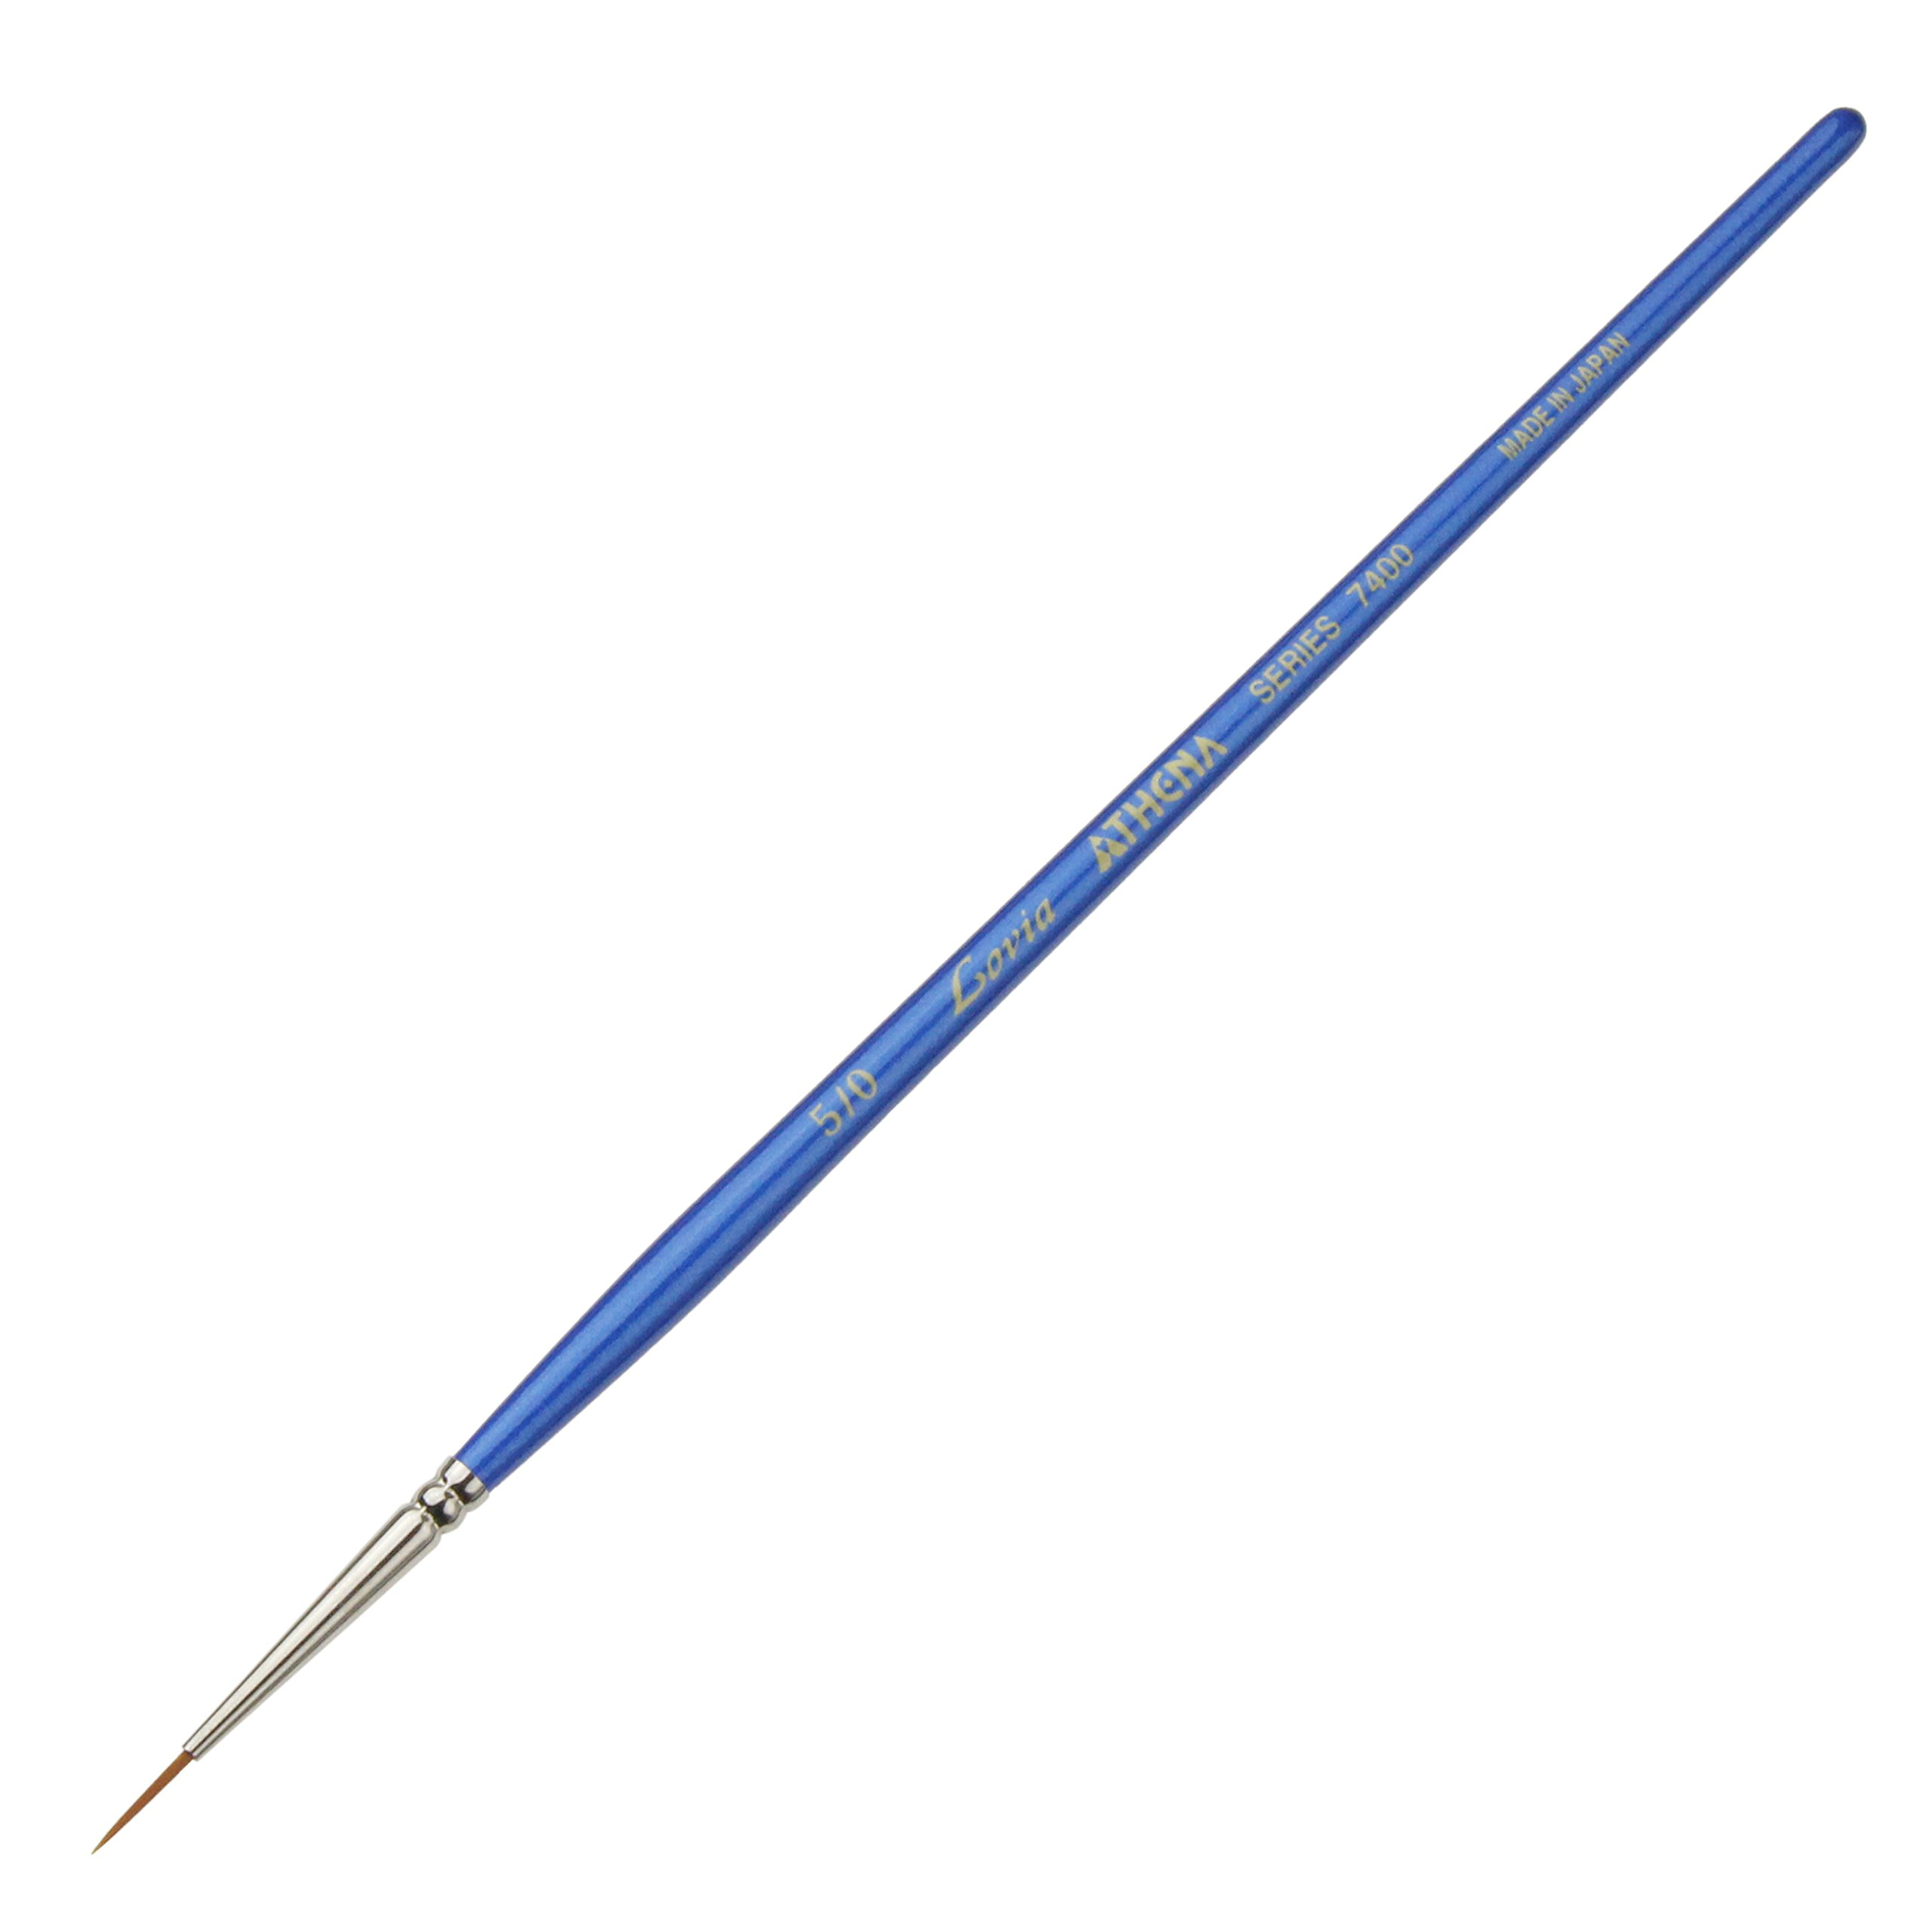 Athena Liner 7400-5/0 Paint Brush by Athena